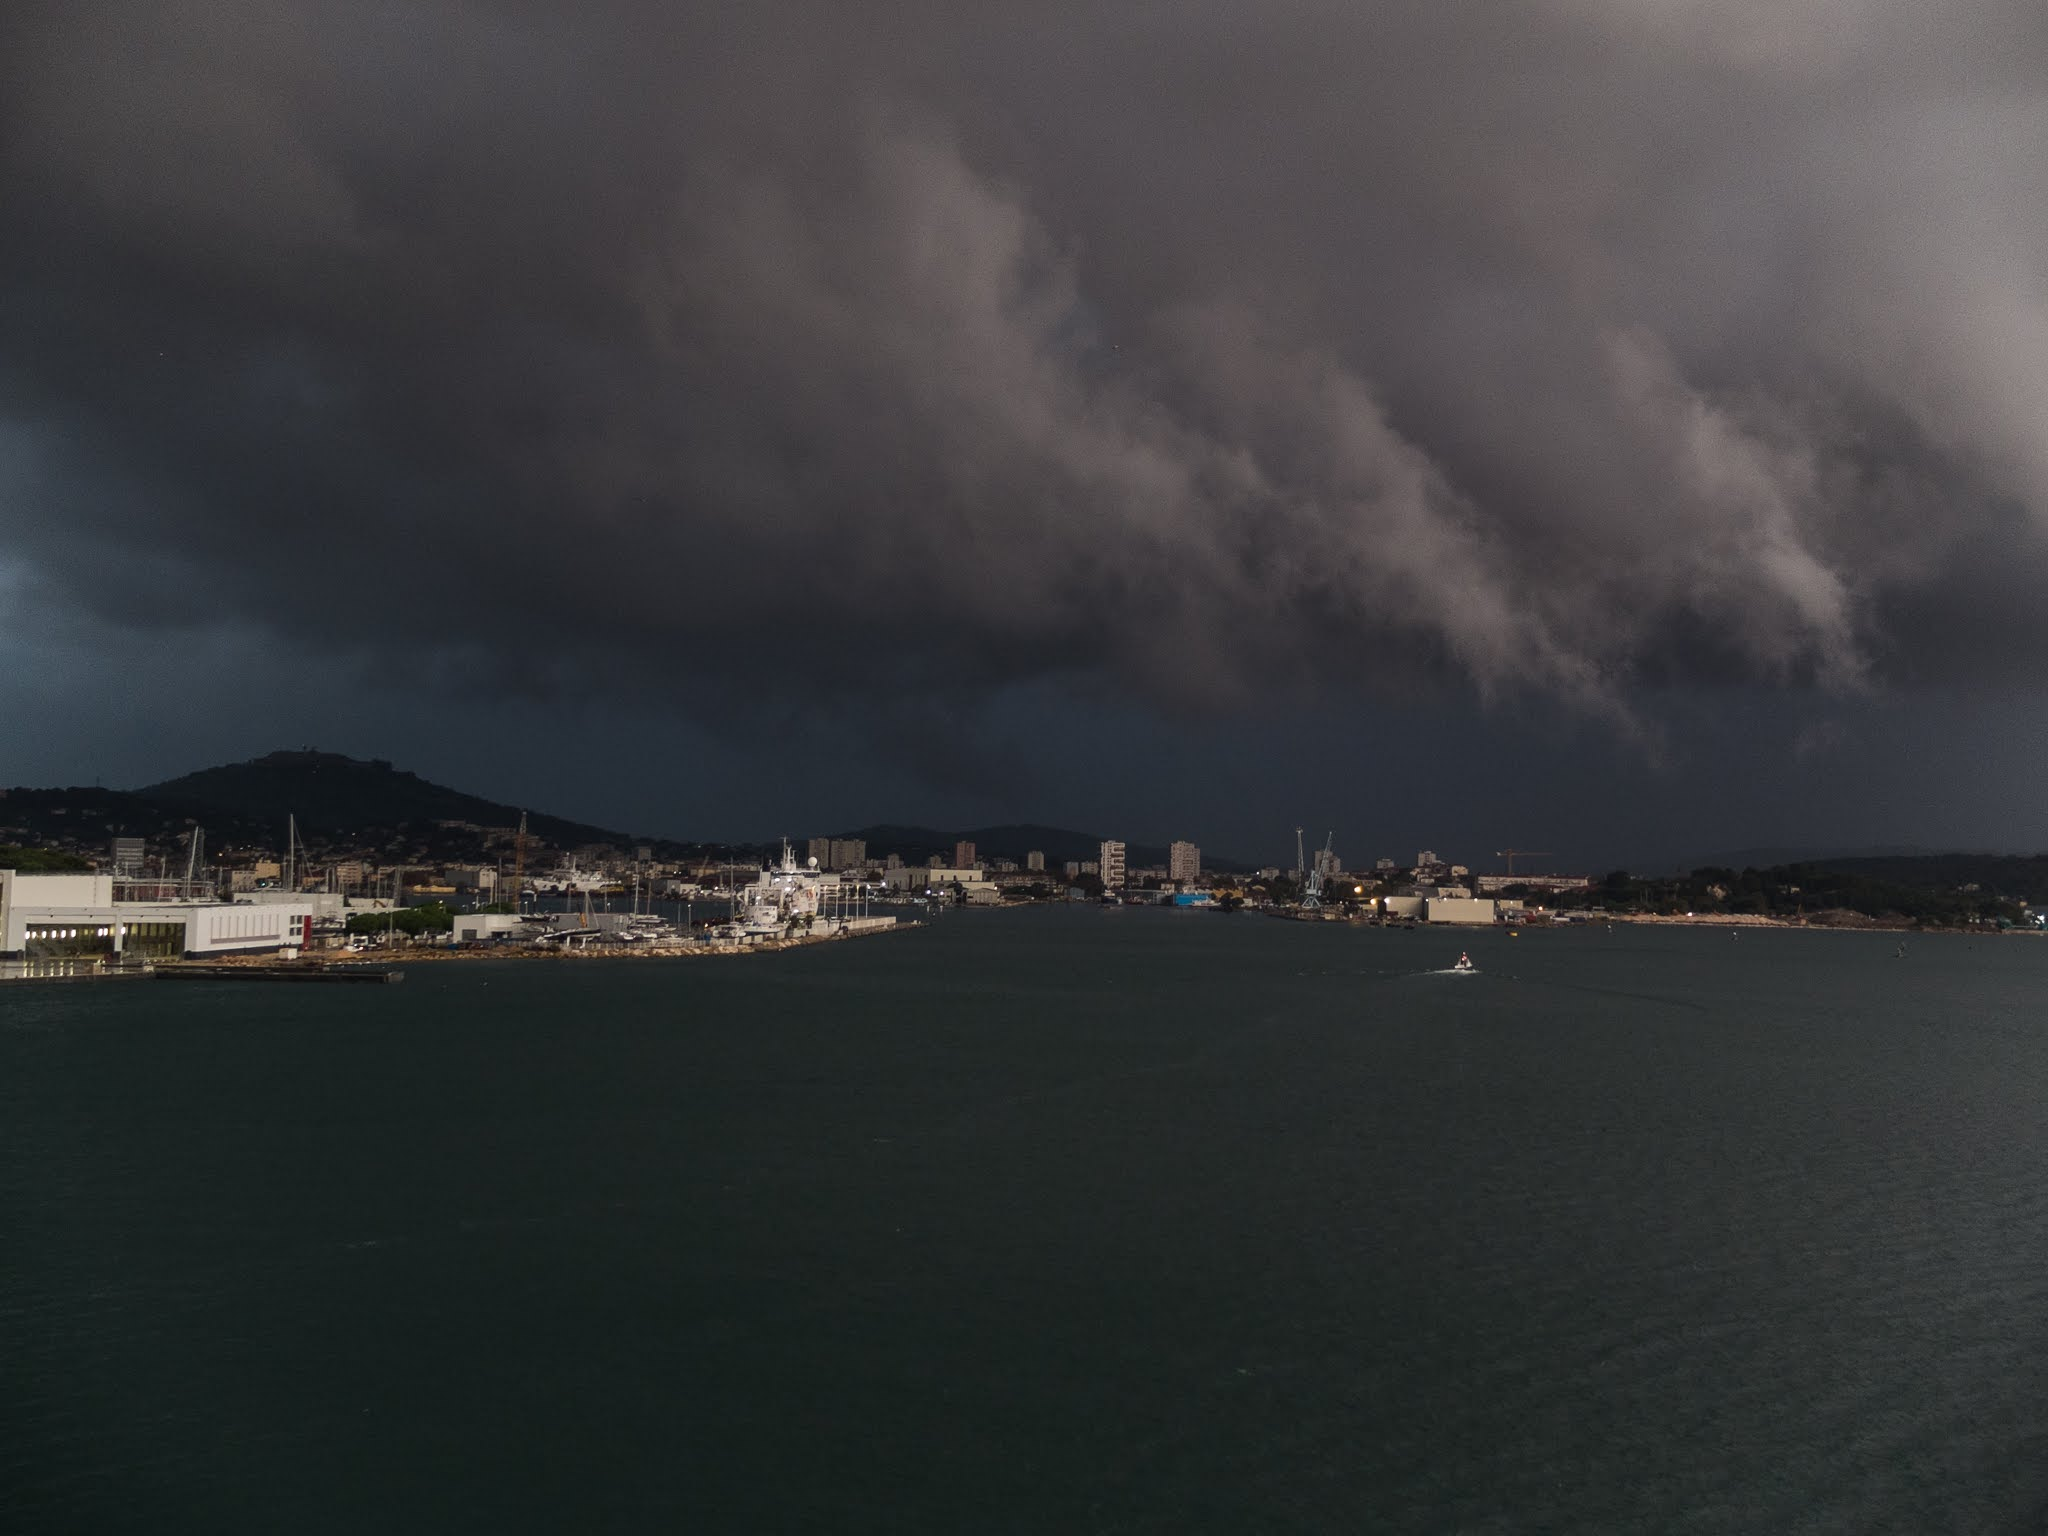 Sunlight reflecting off of clouds in the port of Toulon, Southern France.